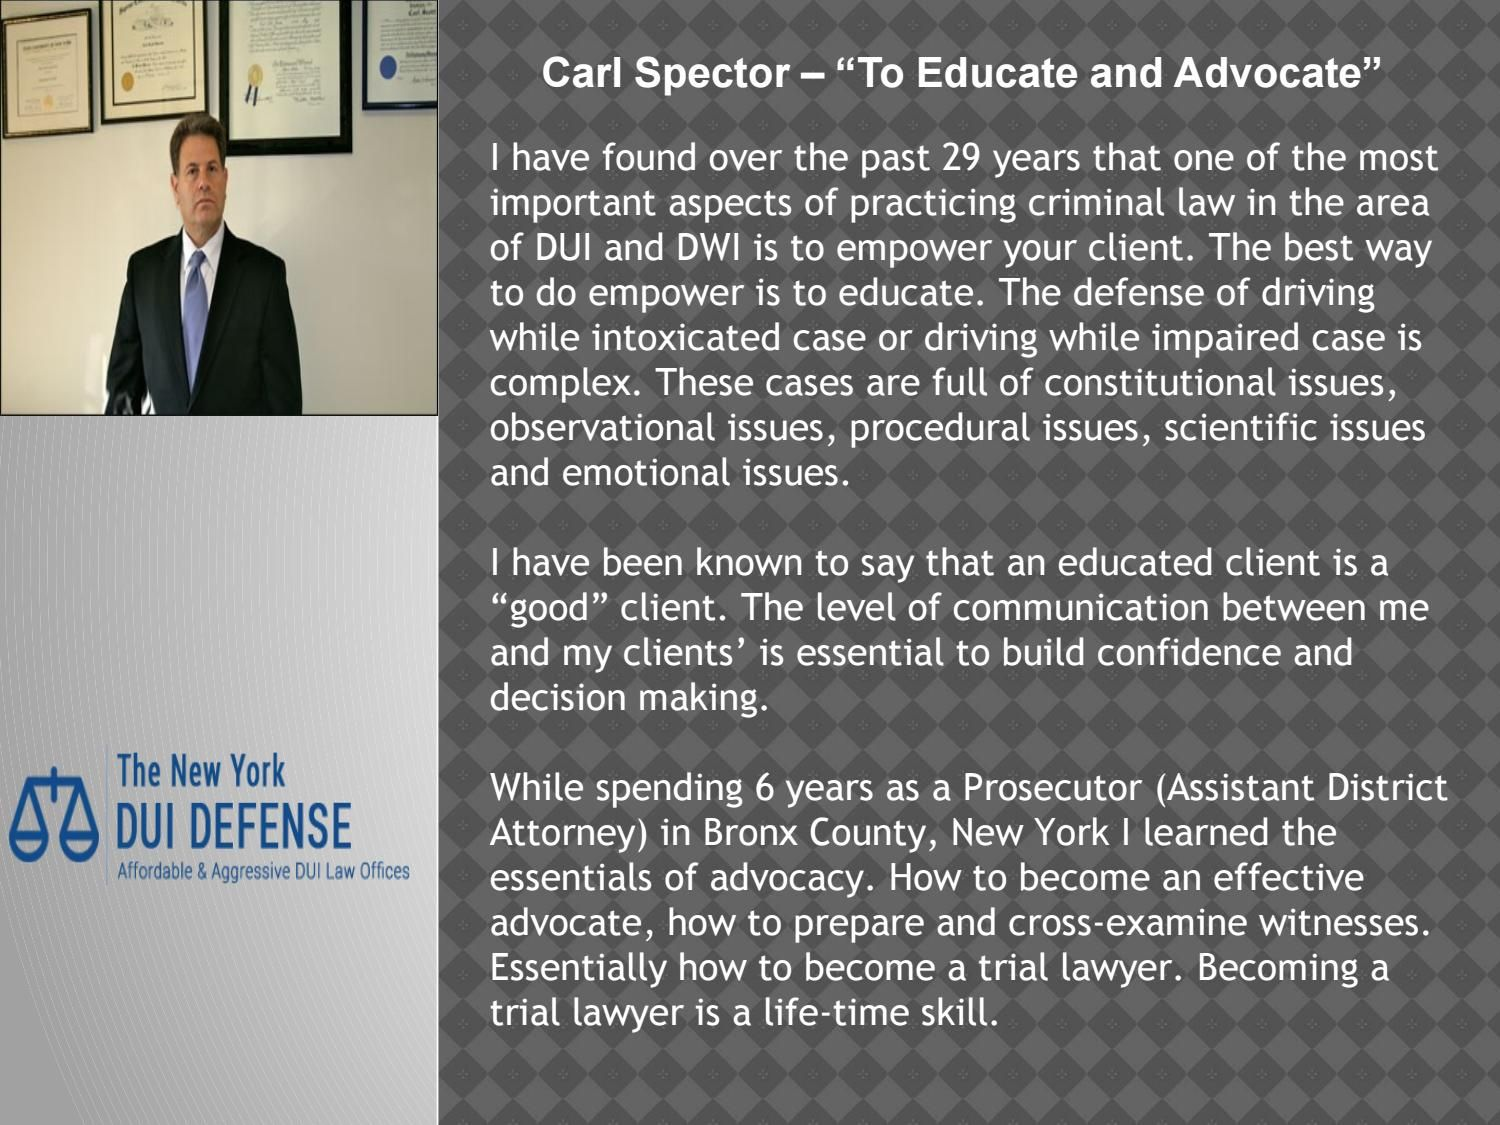 Dui Expert Dui Lawyer New York Lawyer Education New York